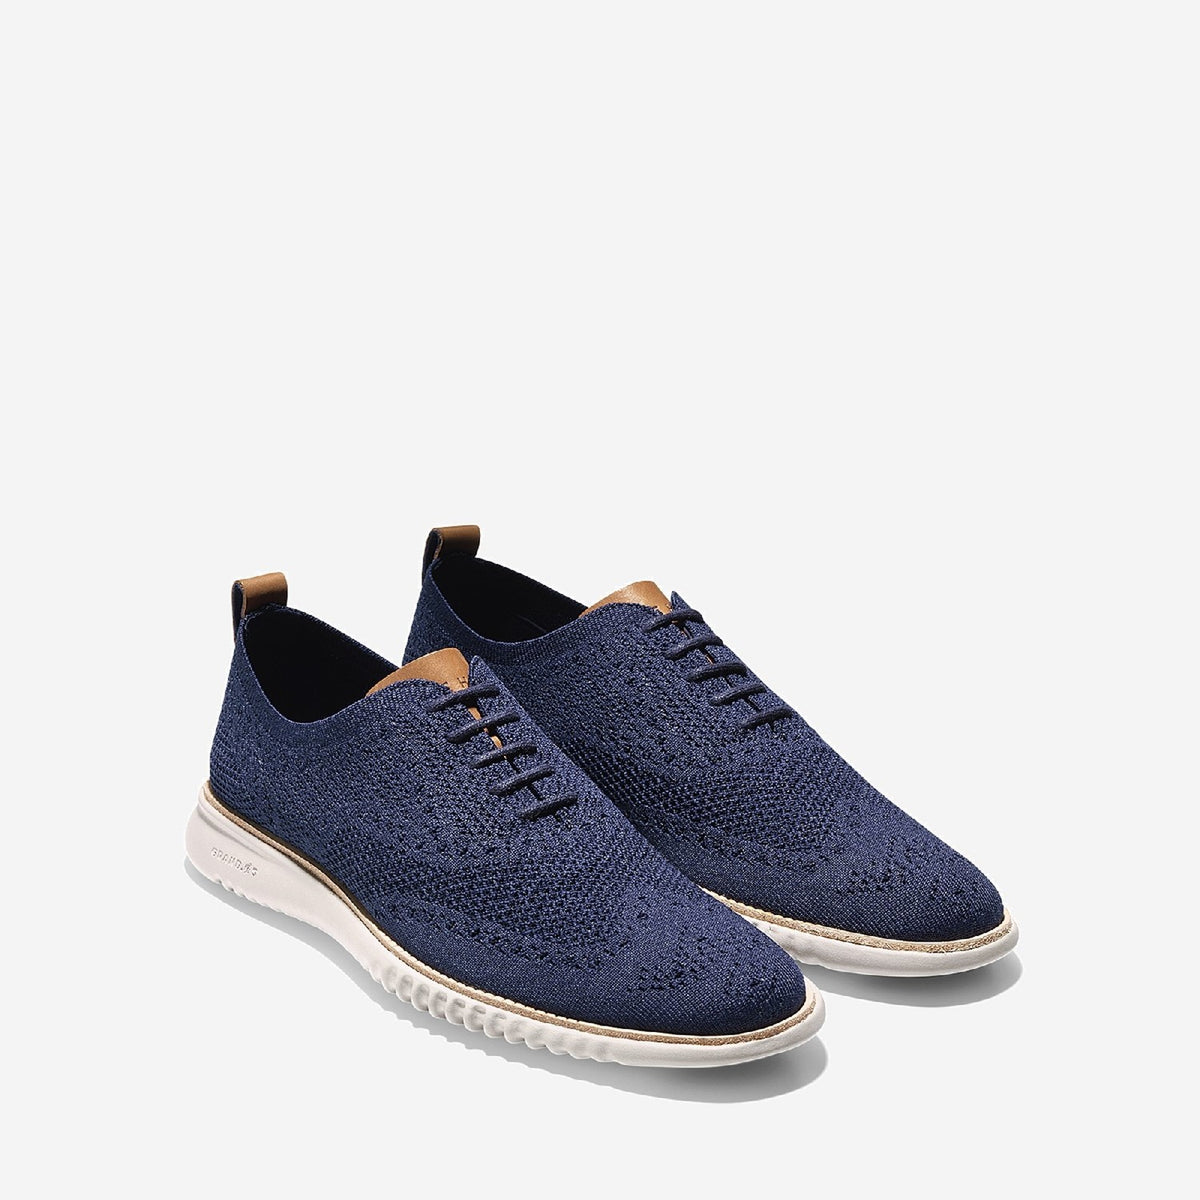 Men's 2.ZERØGRAND Stitchlite Oxford Marine Blue/Grey